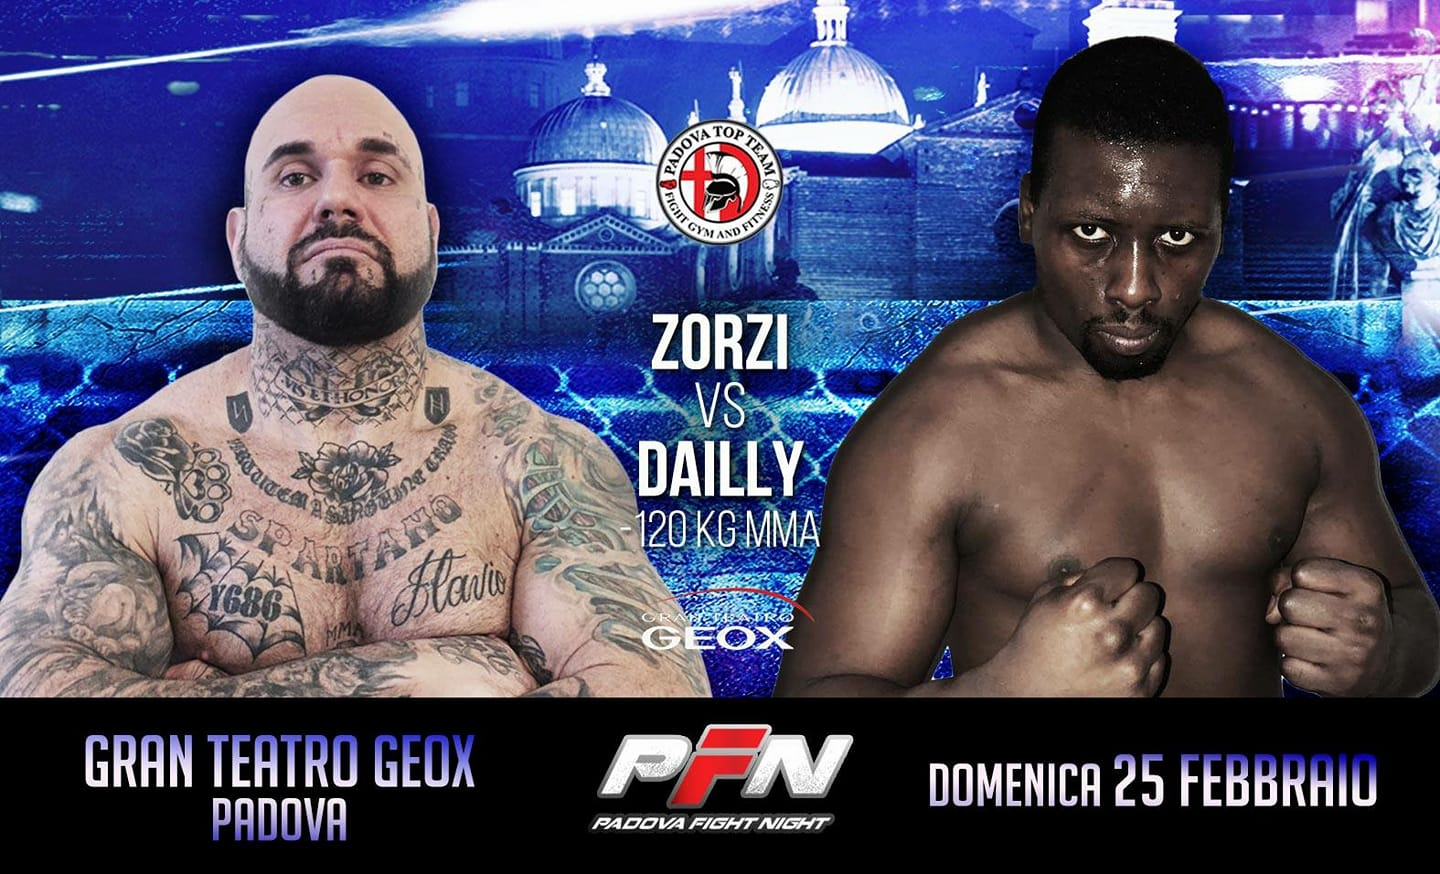 PADOVA FIGHT NIGHT 6